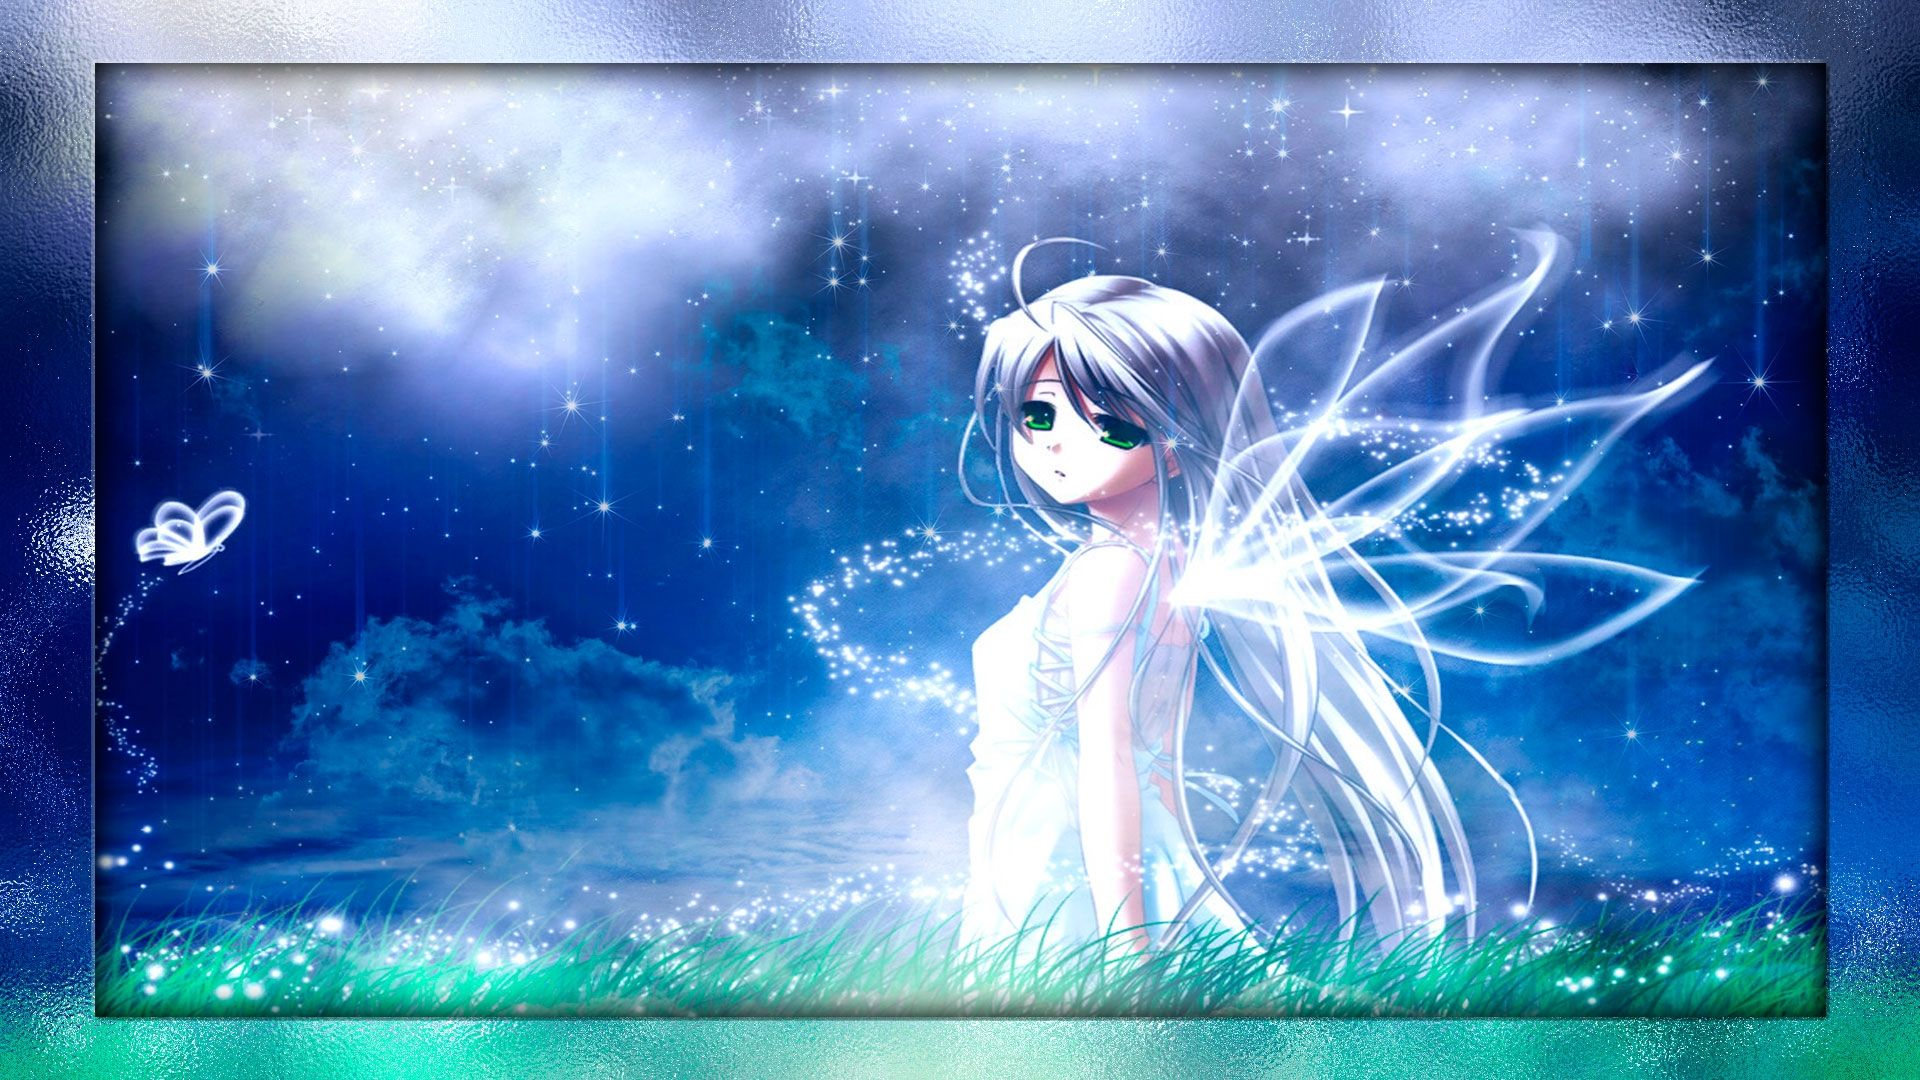 Anime fairy wallpapers top free anime fairy backgrounds - Beautiful anime wallpaper hd ...